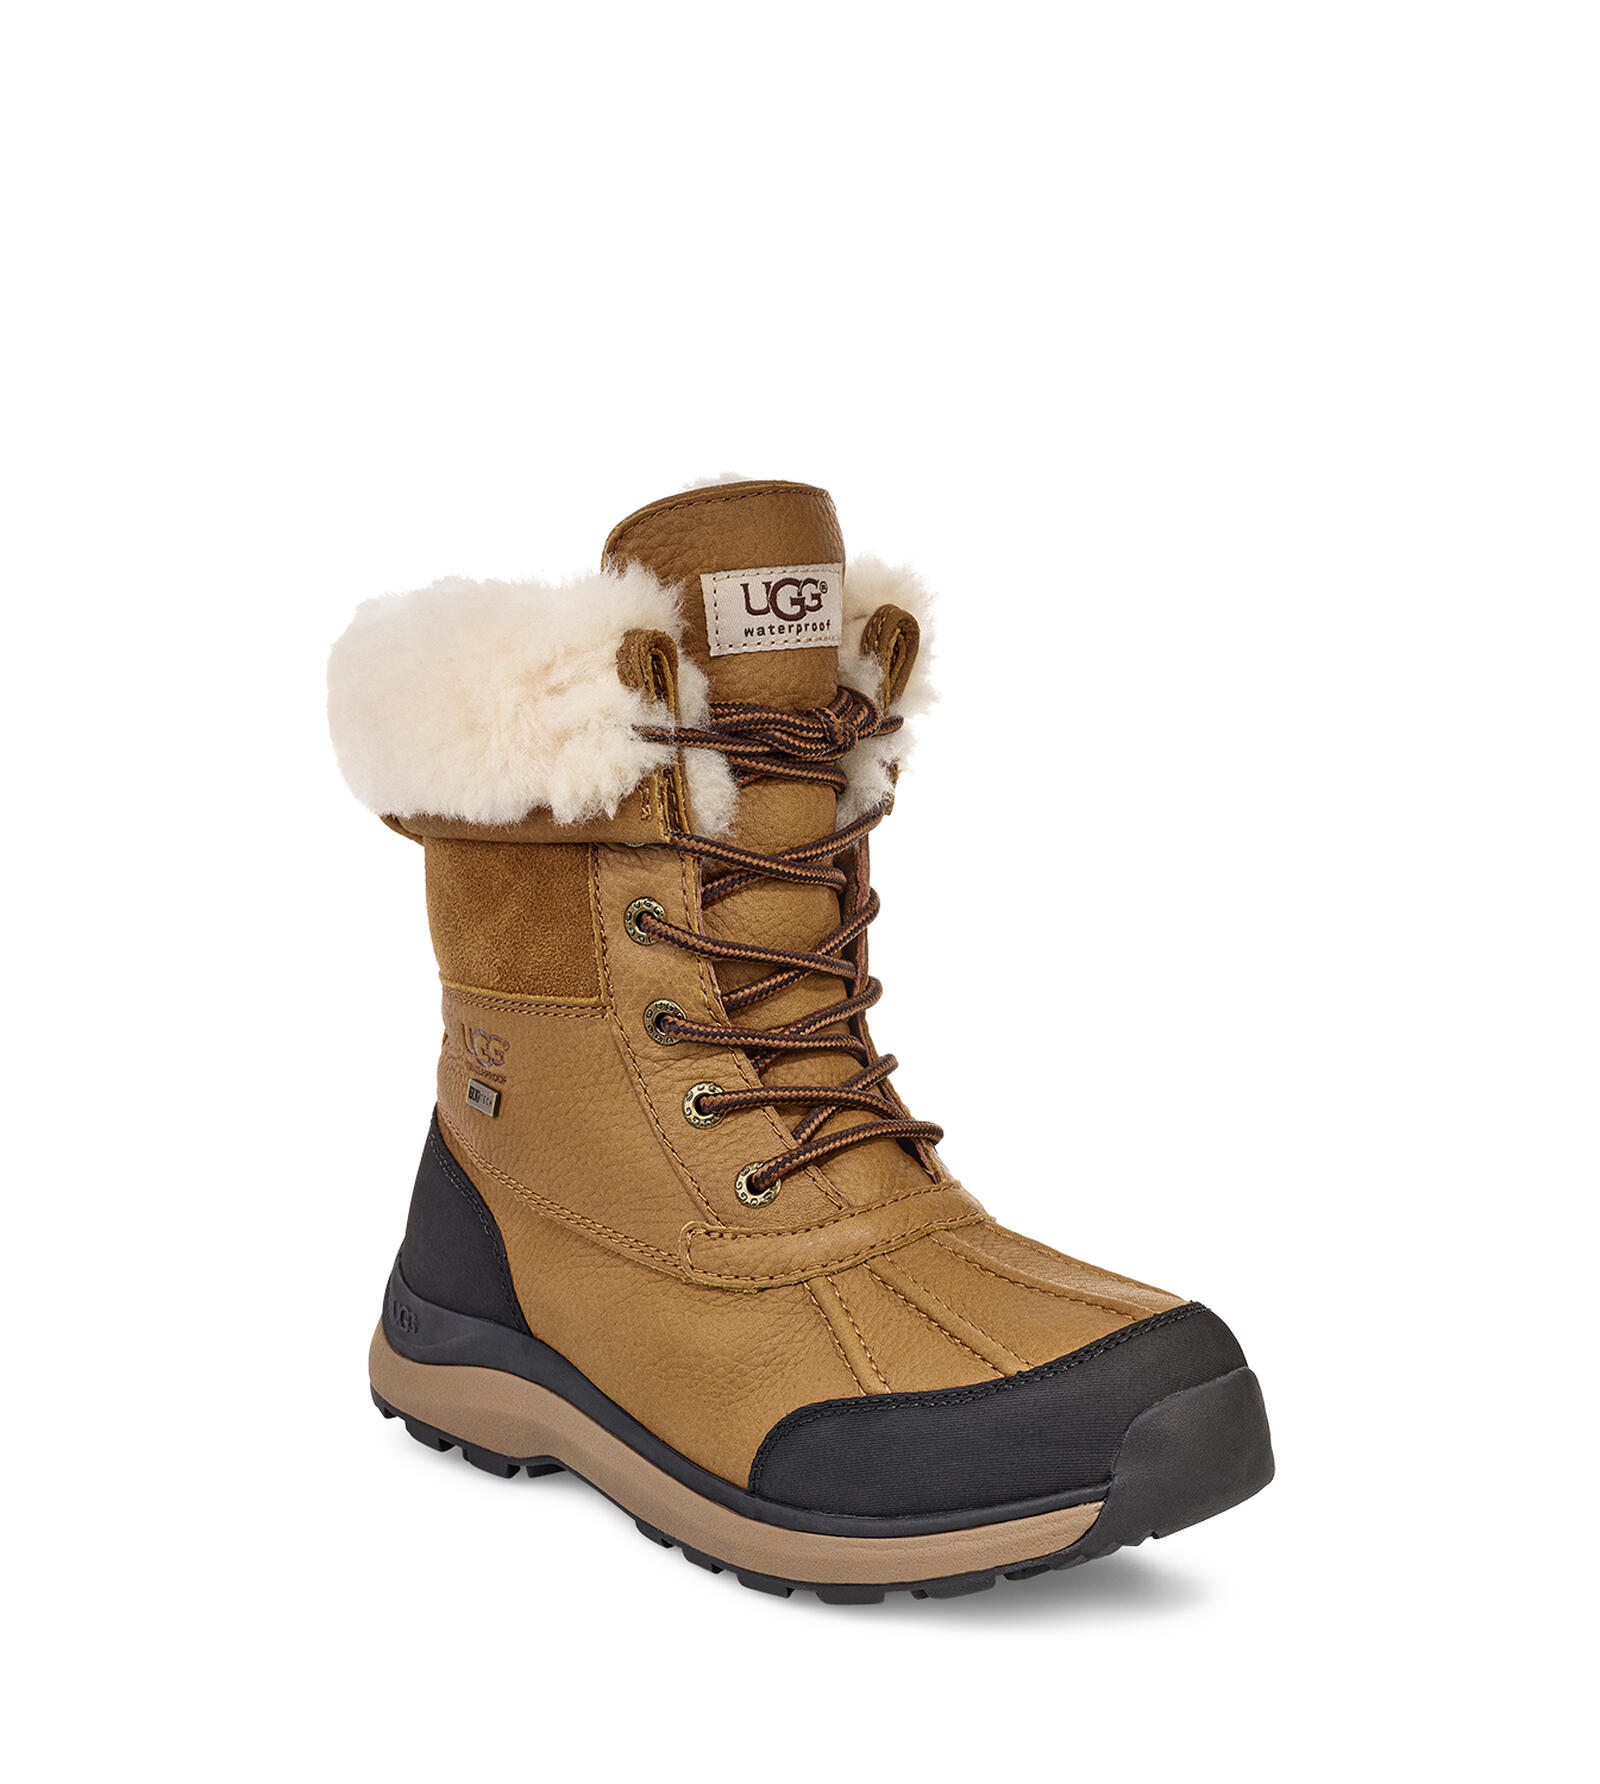 Adirondack III Waterproof Snow Boot